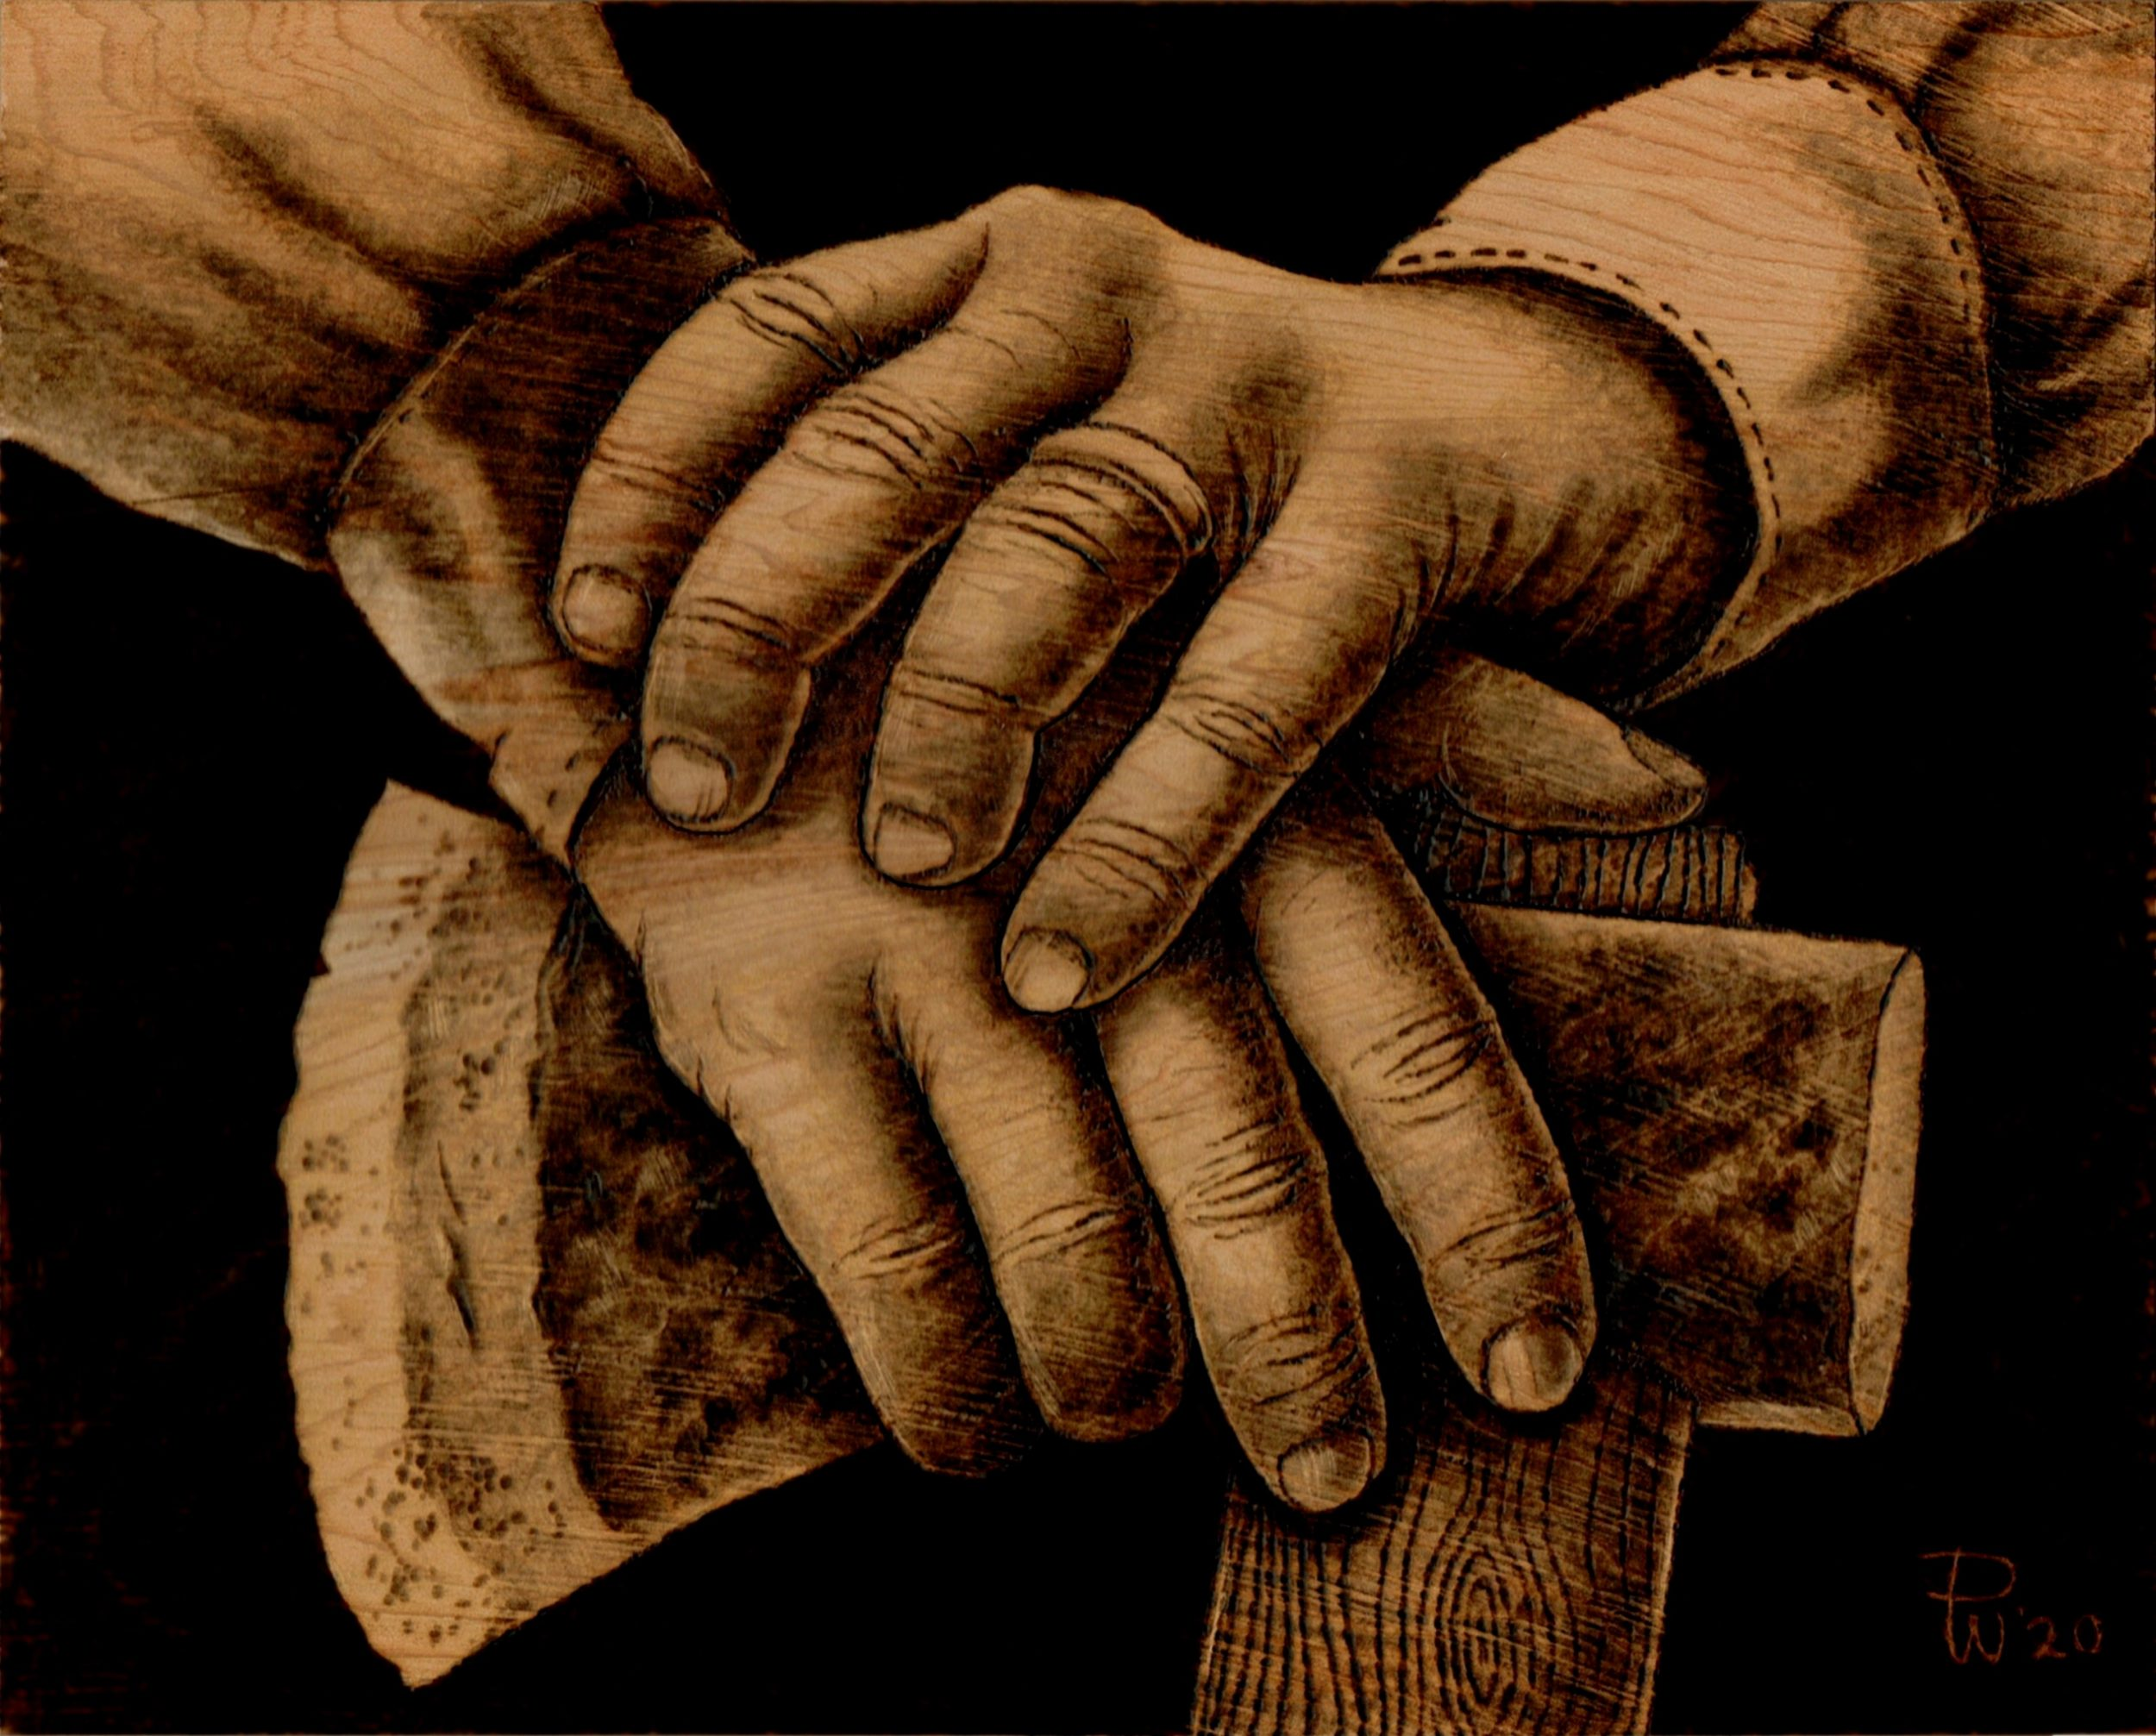 Hands of woodcutter or logger resting on axe - pyrography